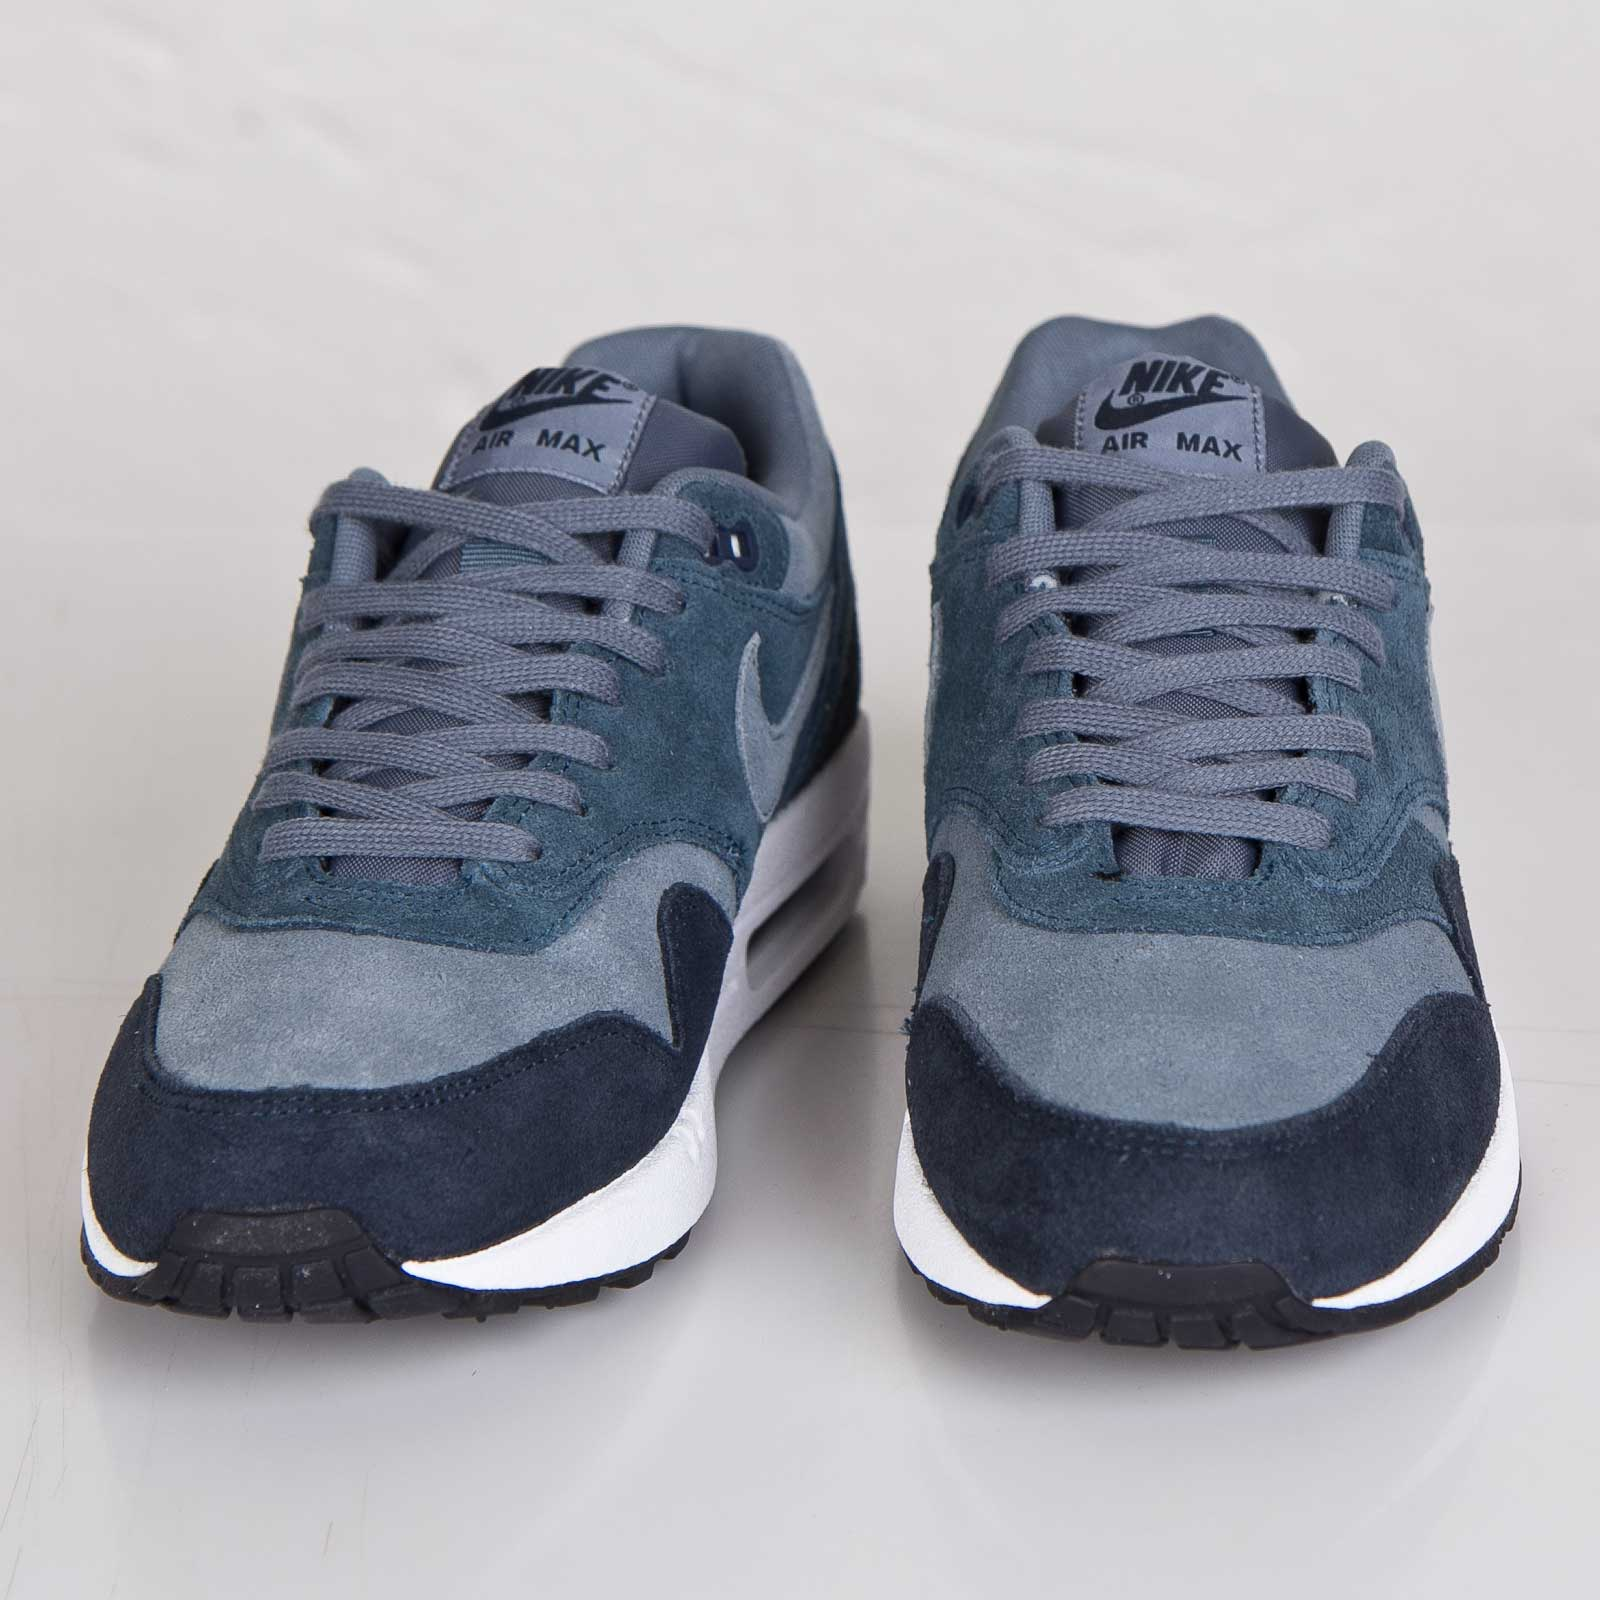 low priced a1691 35d51 Nike Air Max 1 Essential LTR - 599301-444 - Sneakersnstuff   sneakers    streetwear online since 1999